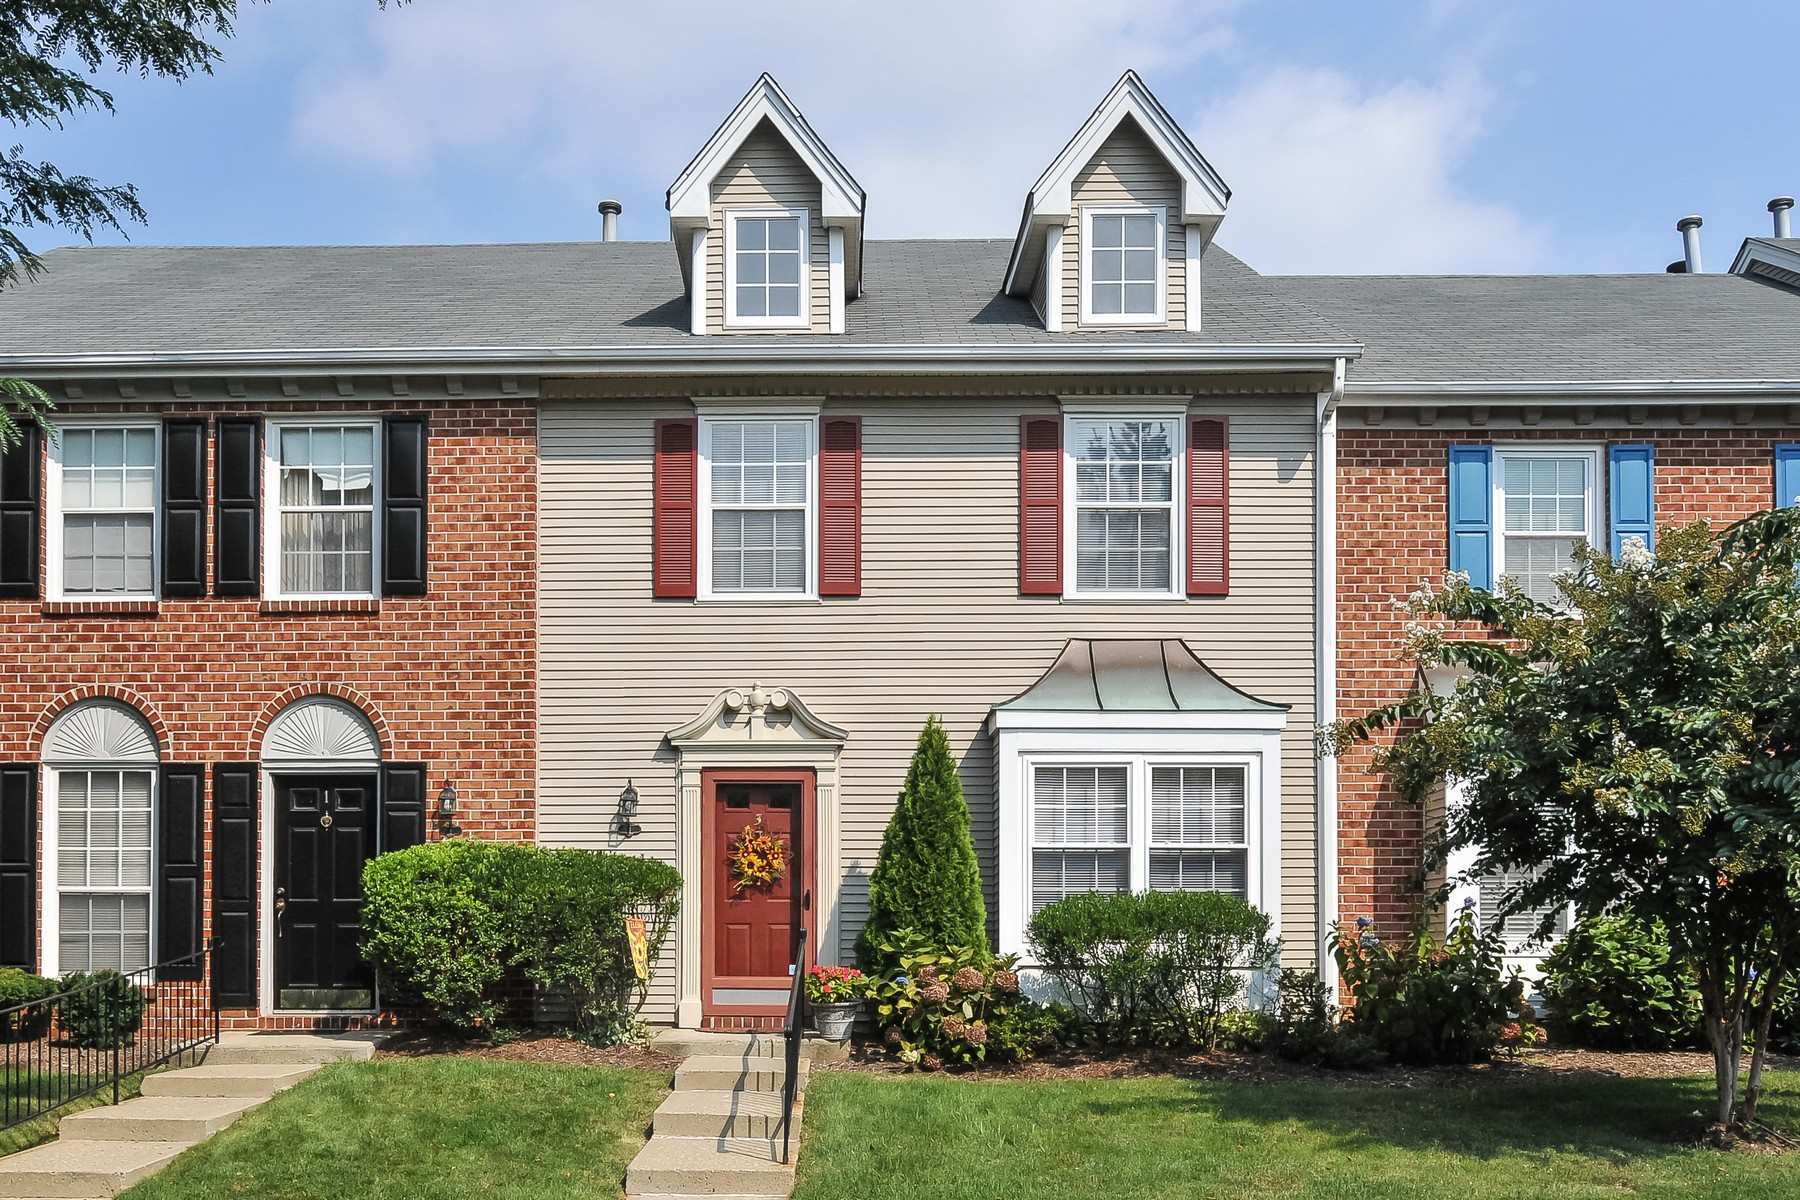 Townhouse for Sale at 3 Preakness Court Tinton Falls, New Jersey 07724 United States